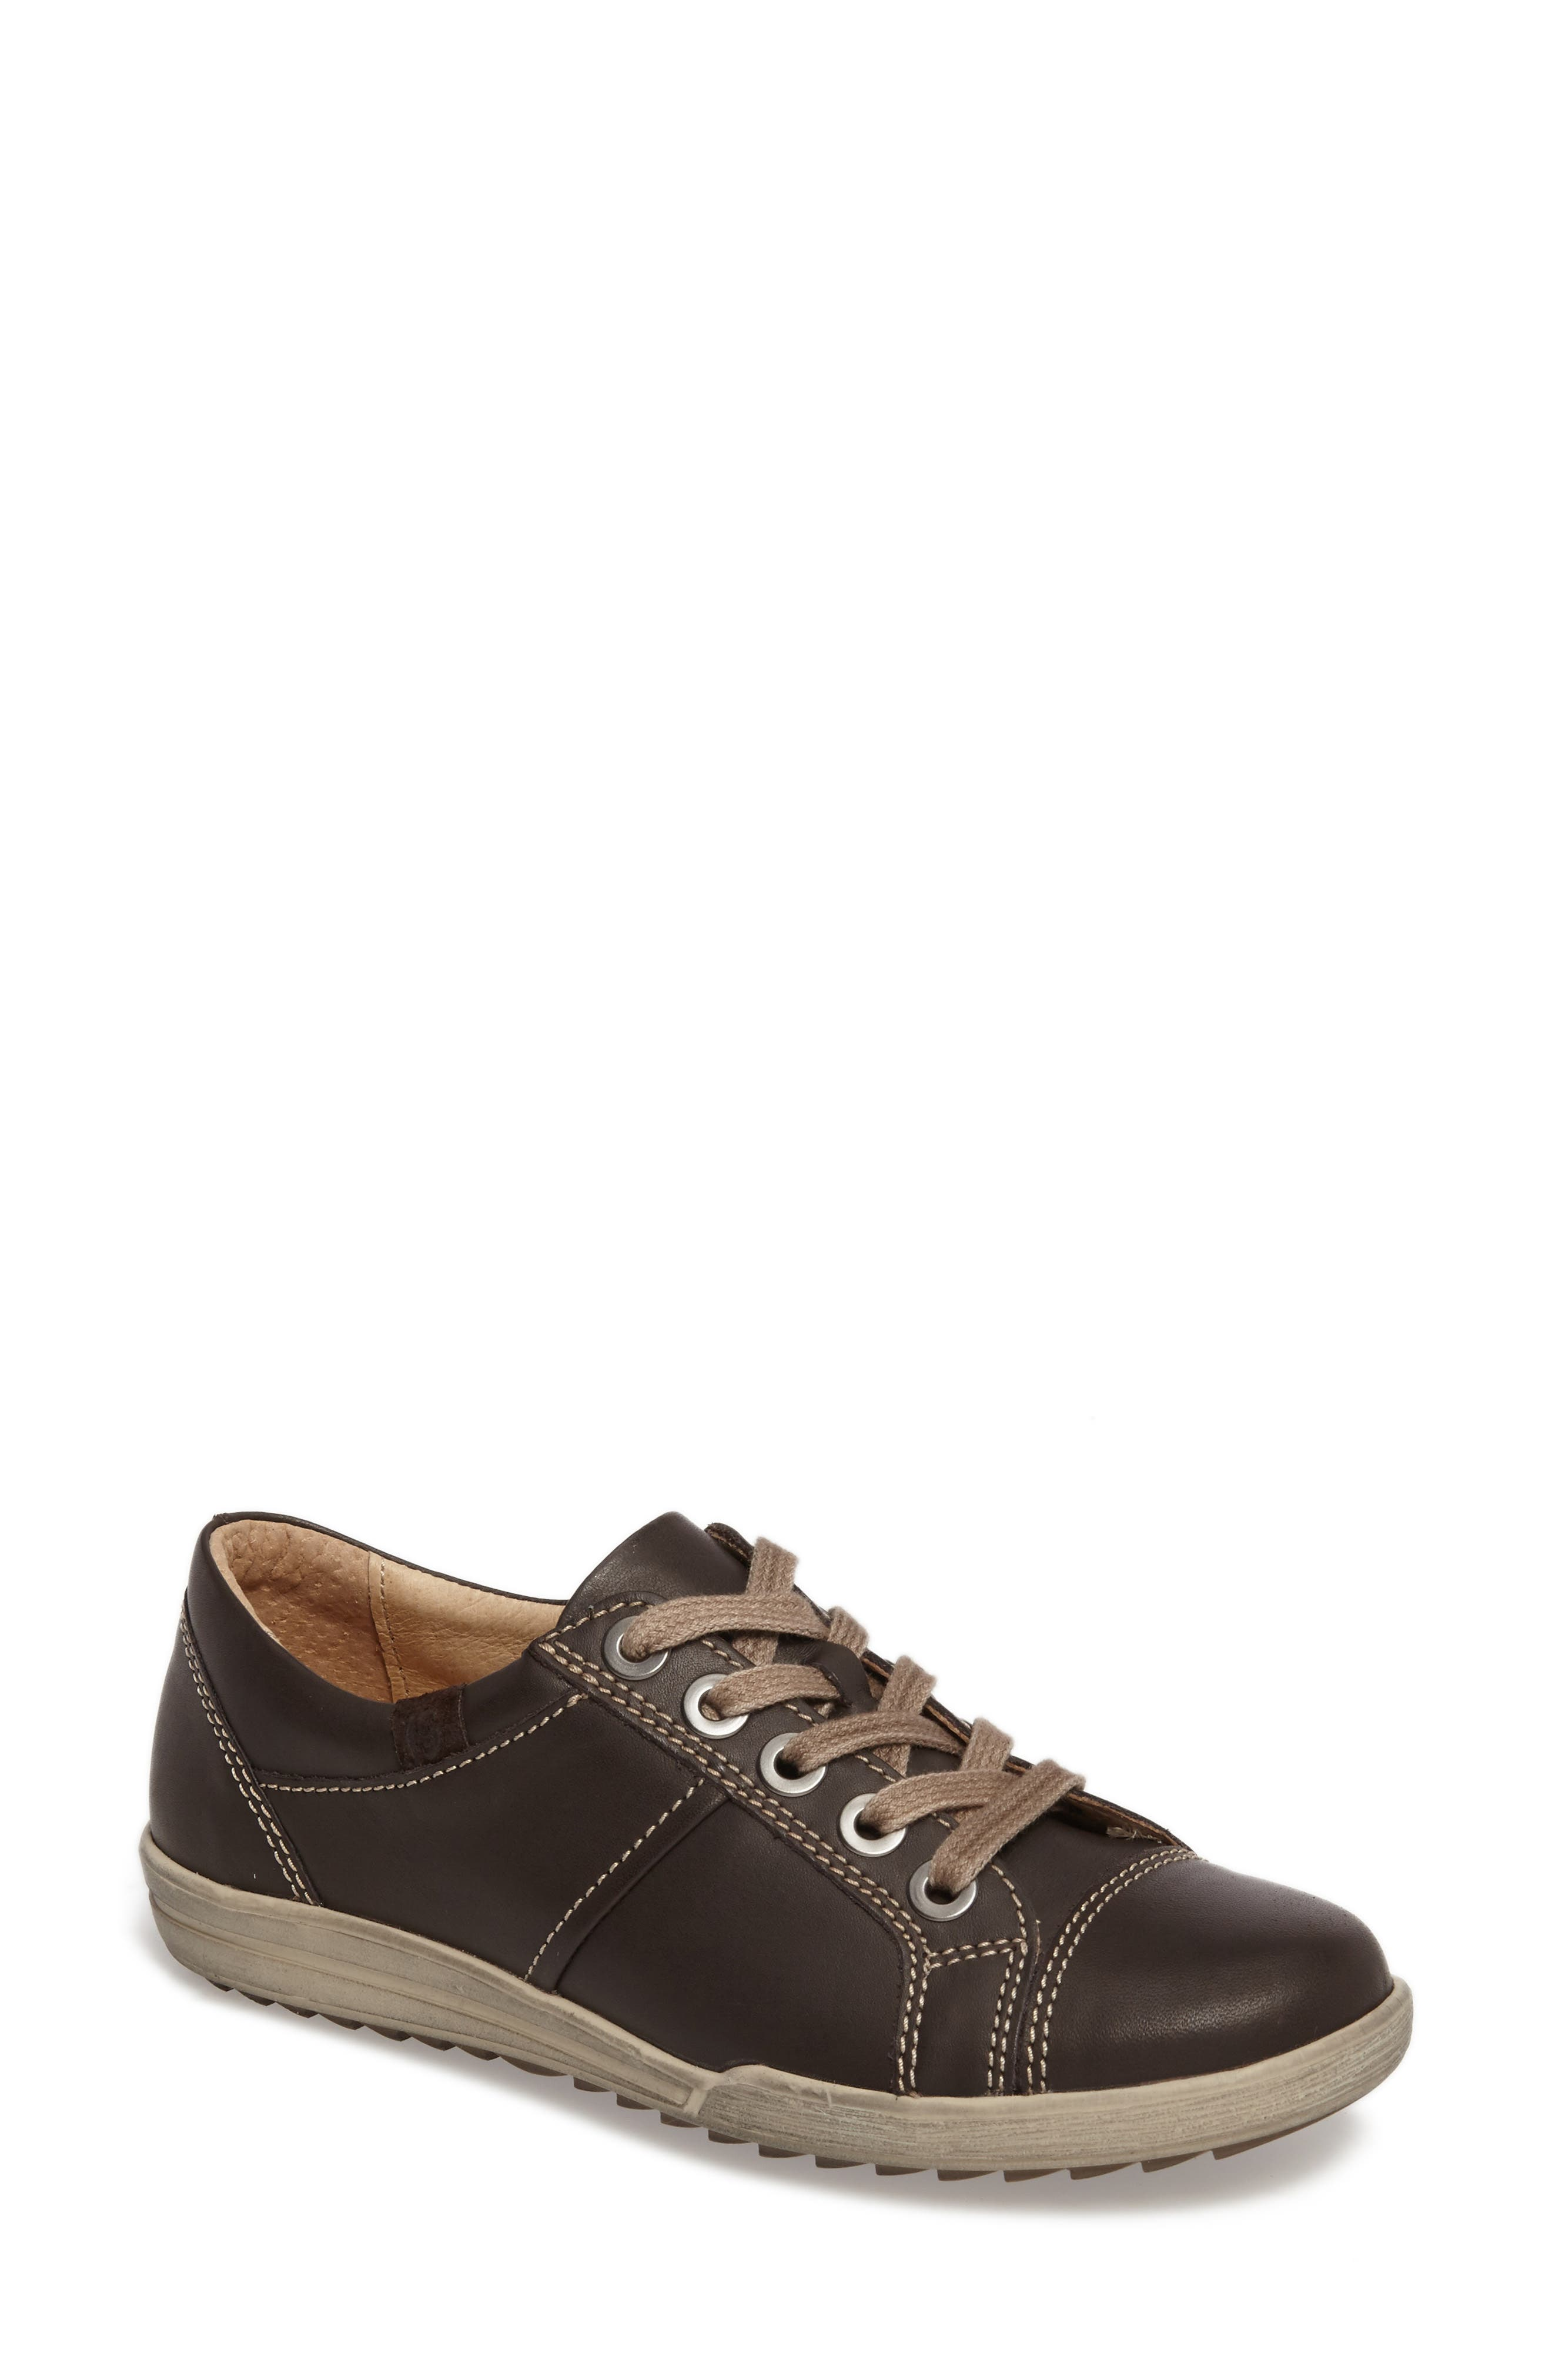 Dany 59 Sneaker,                         Main,                         color, Moro Leather